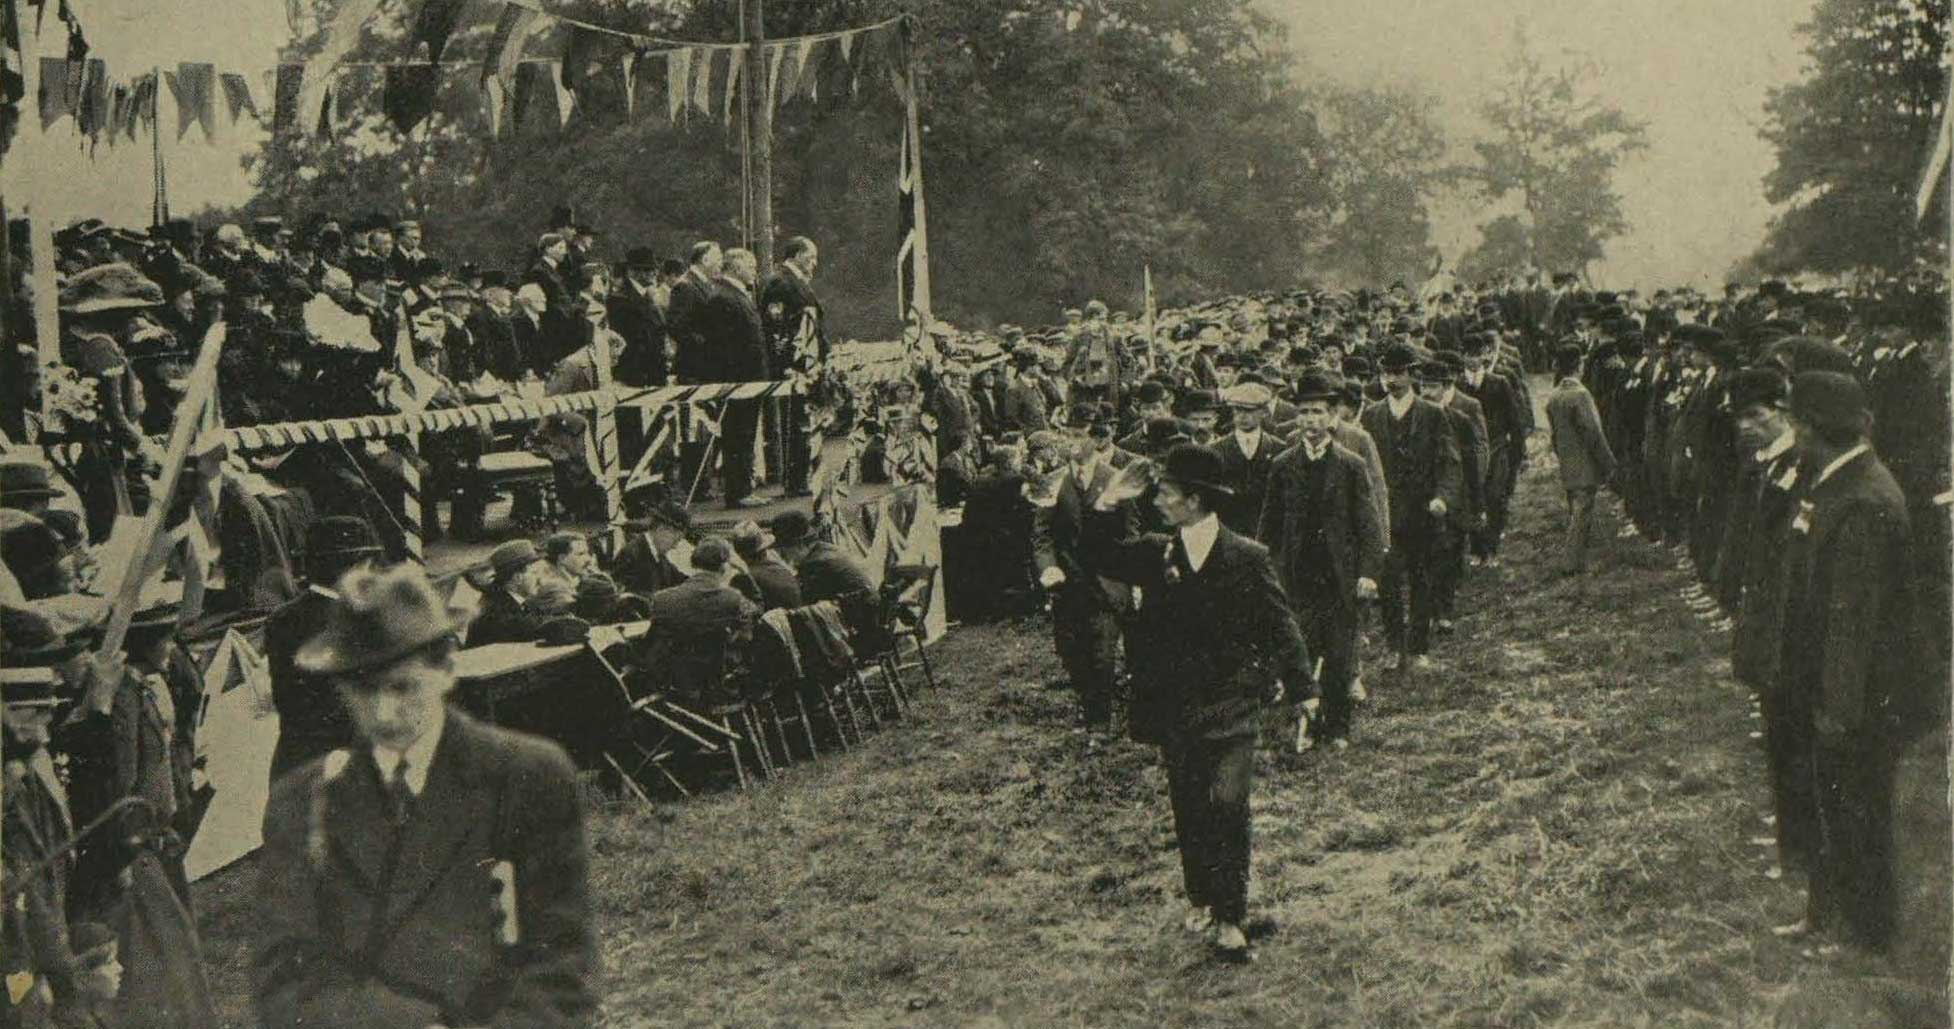 Carson reviews Ulster Volunteers in Newry earlier in his current tour of Ulster.